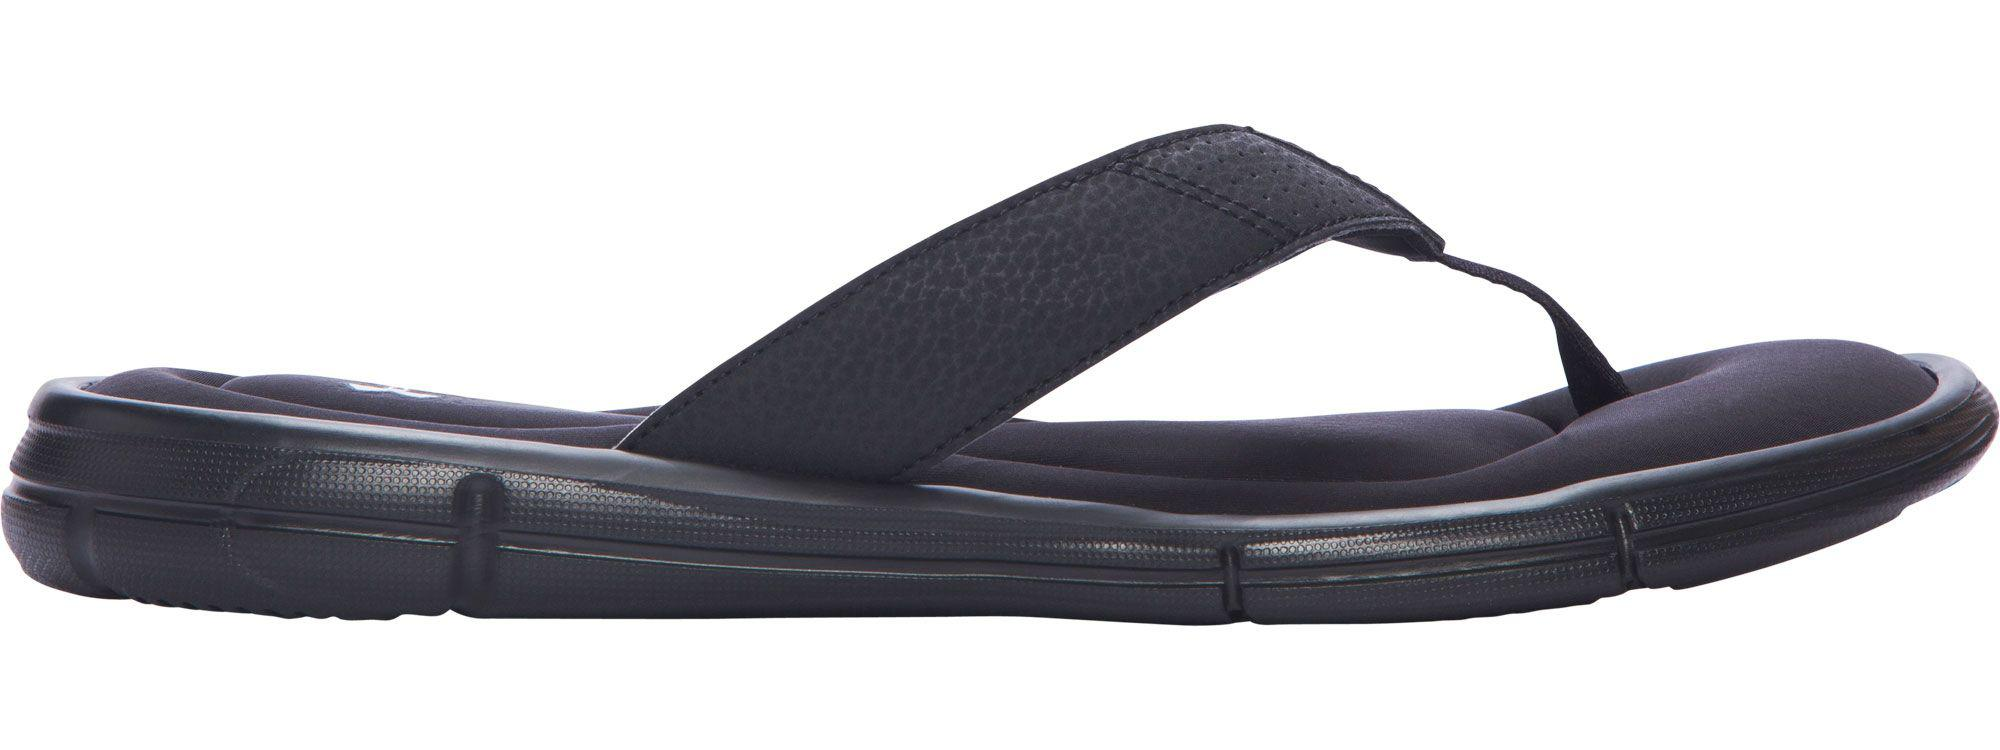 f94b6ed5d Lyst - Under Armour Ignite Ii Thong Flip Flops in Black for Men